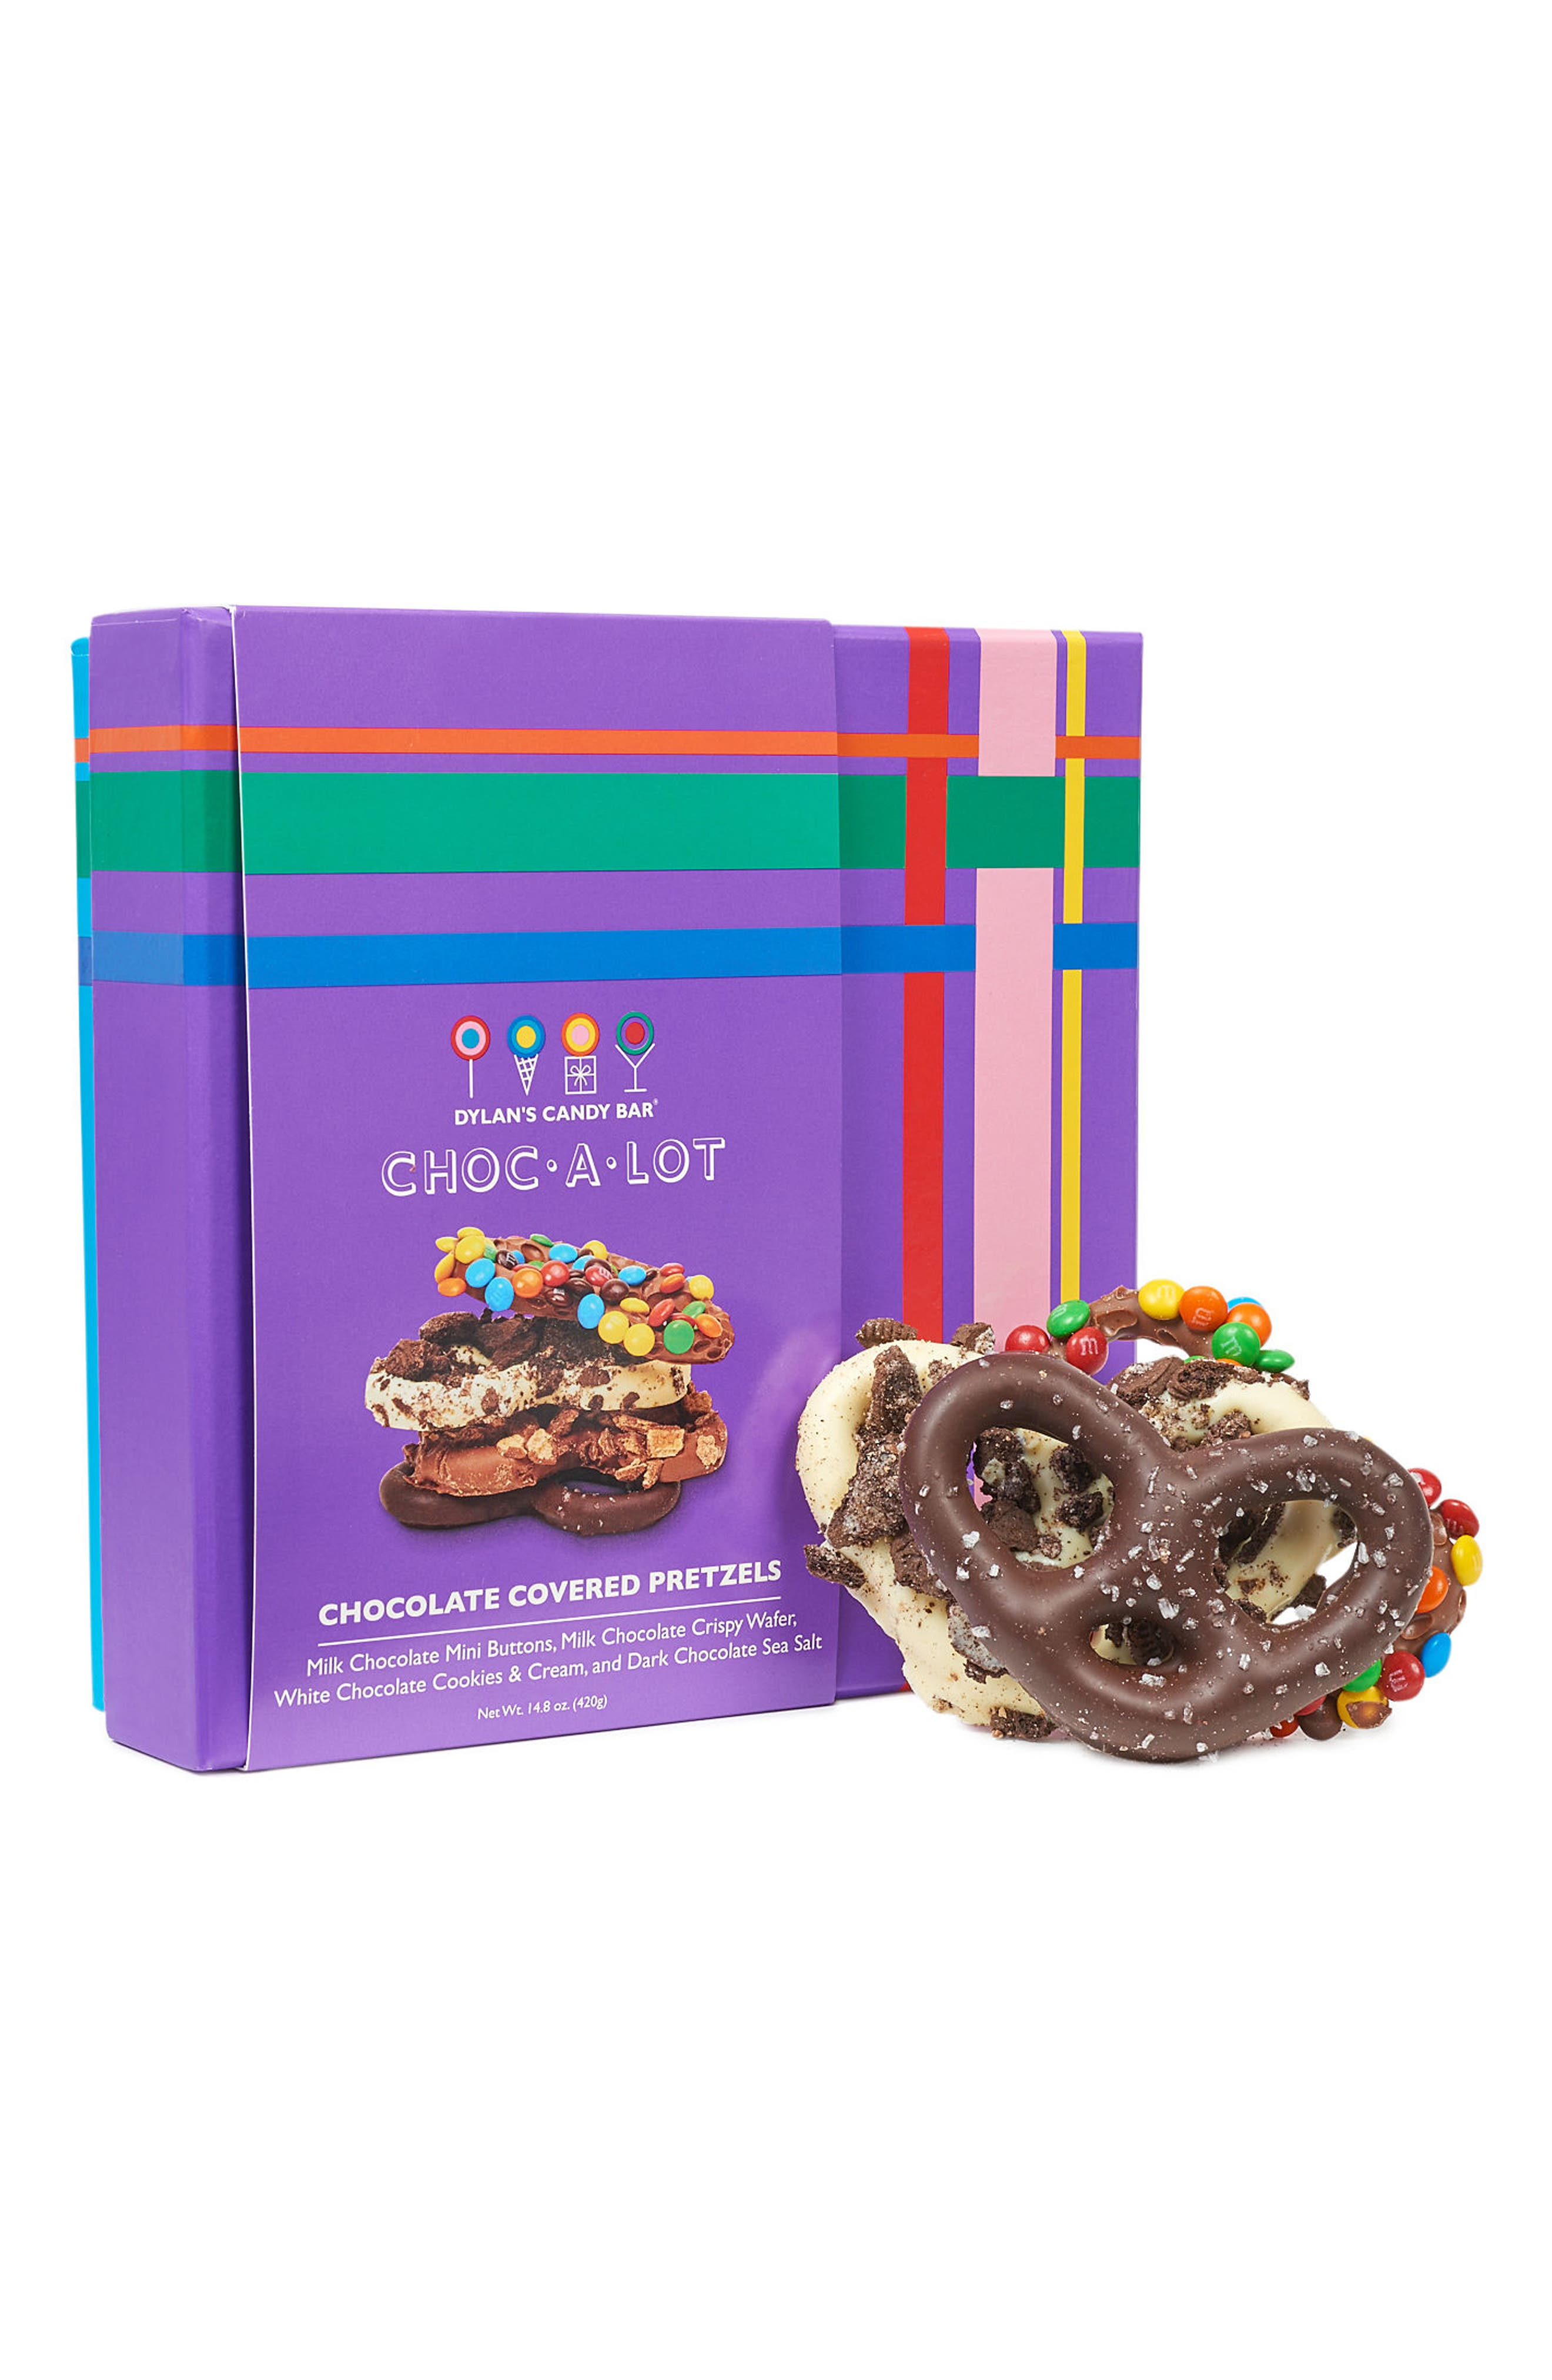 Dylan's Candy Bar Choc-A-Lot Chocolate Covered Pretzels